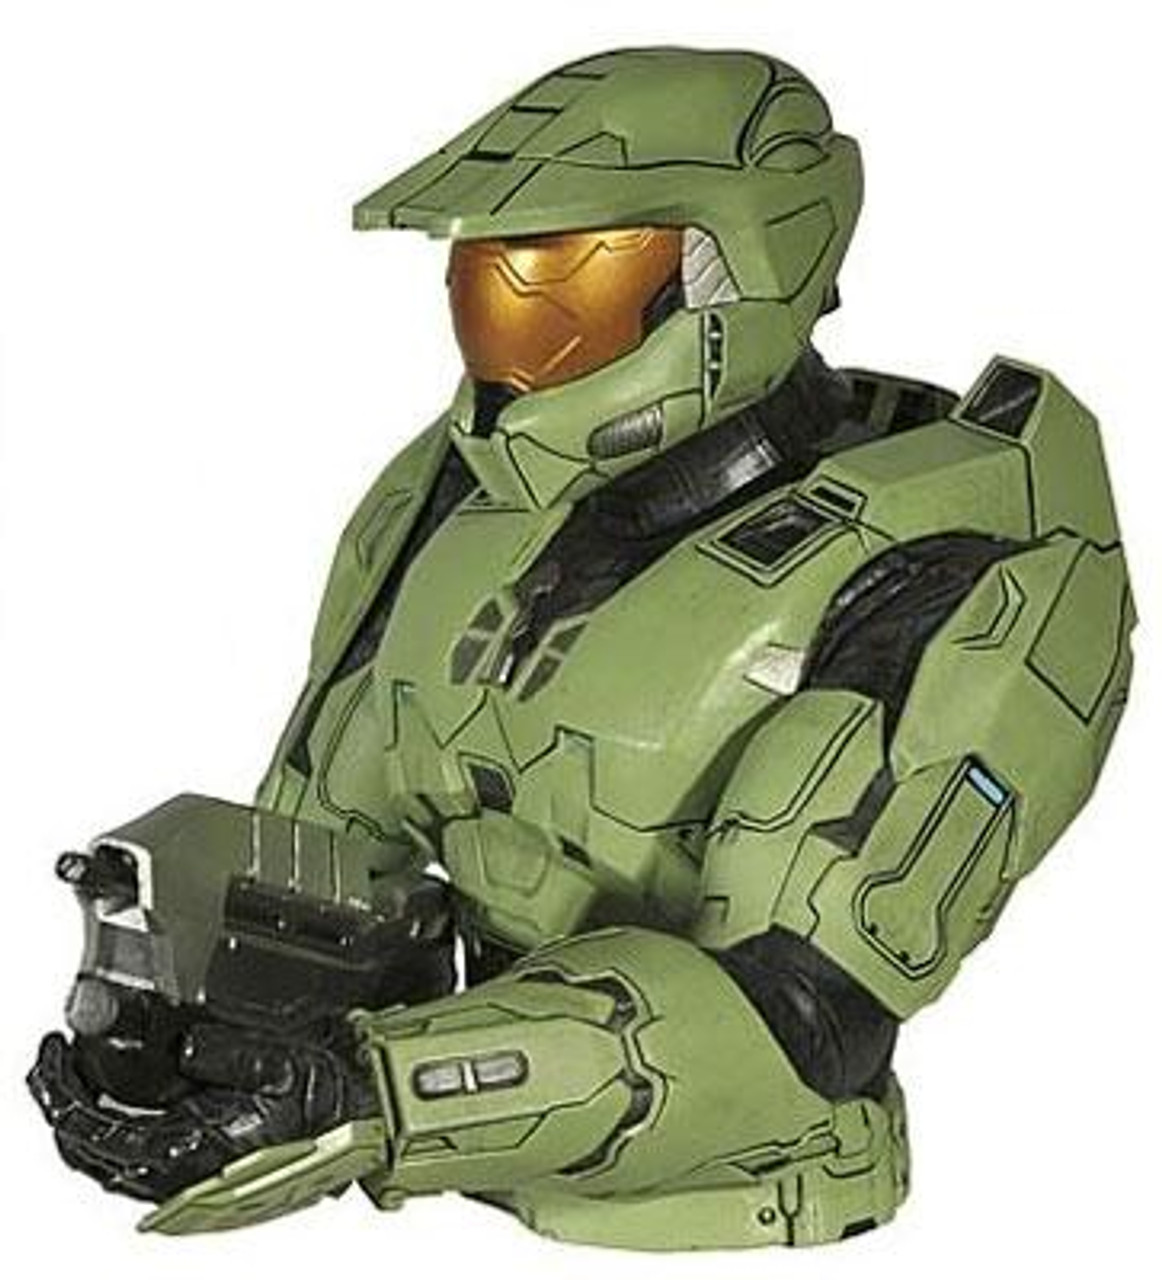 Halo Spartan Mark IV Bust Bank